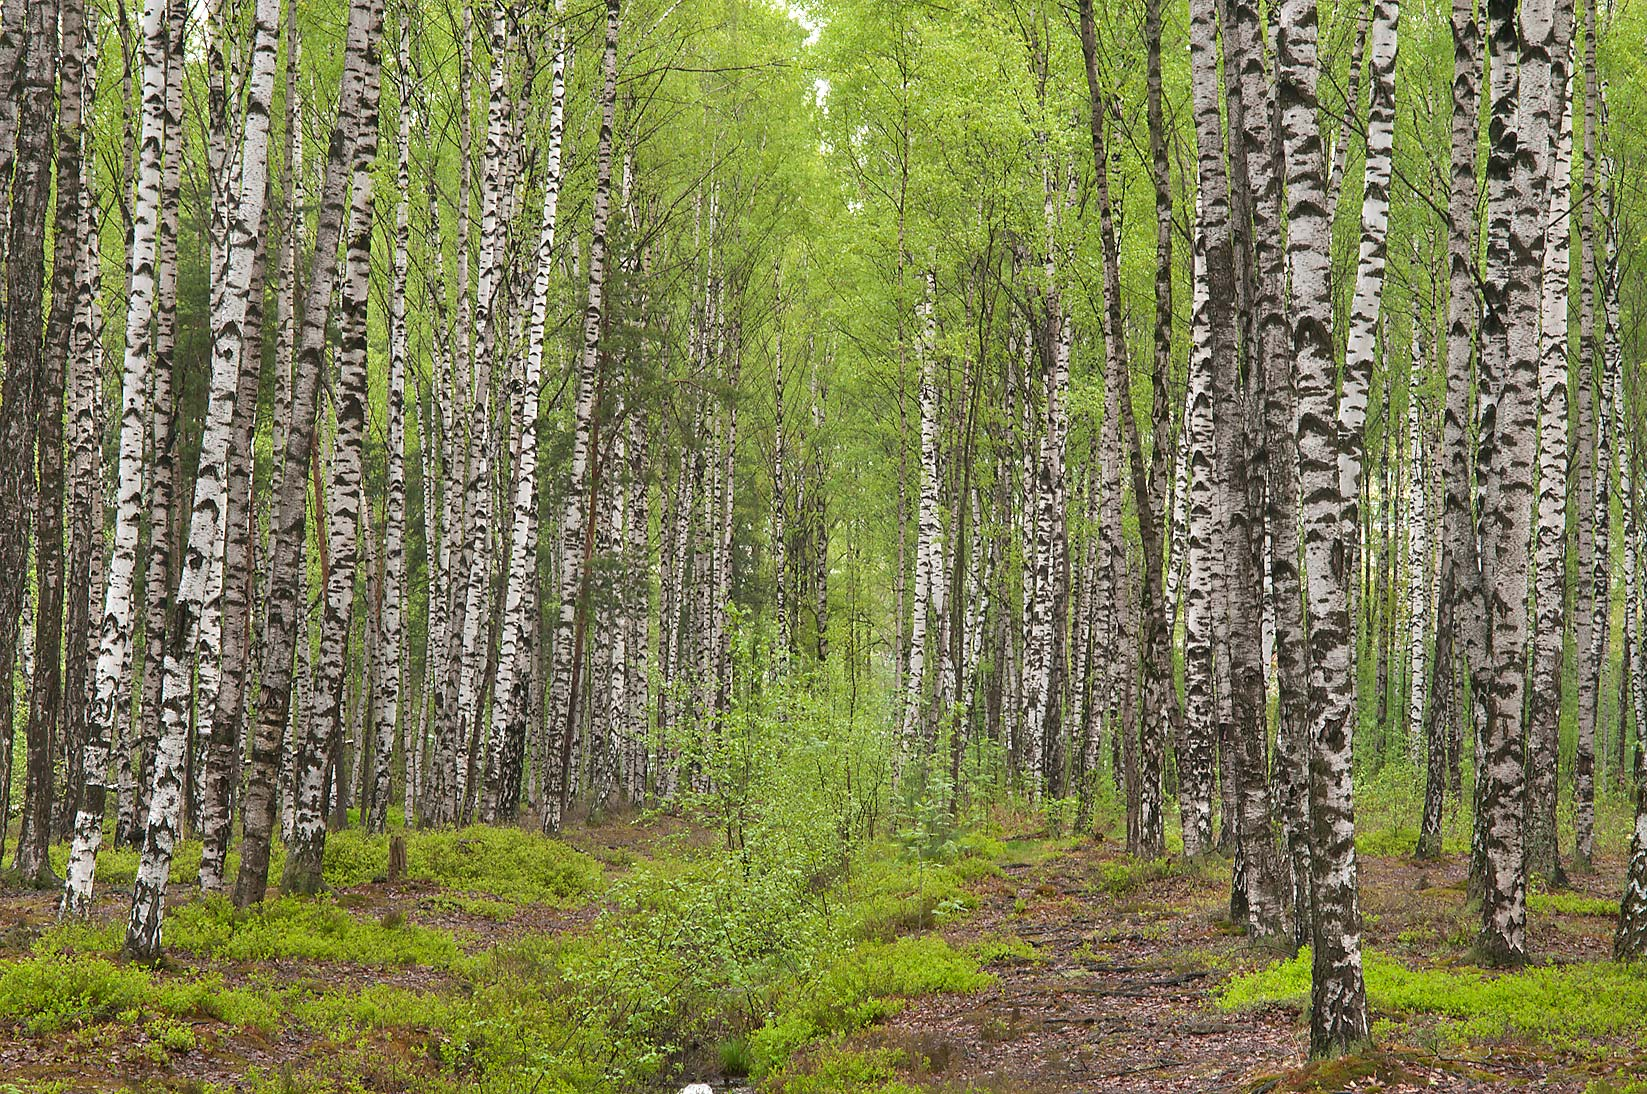 Birch gallery images landscape silver trees woods 202455 picture